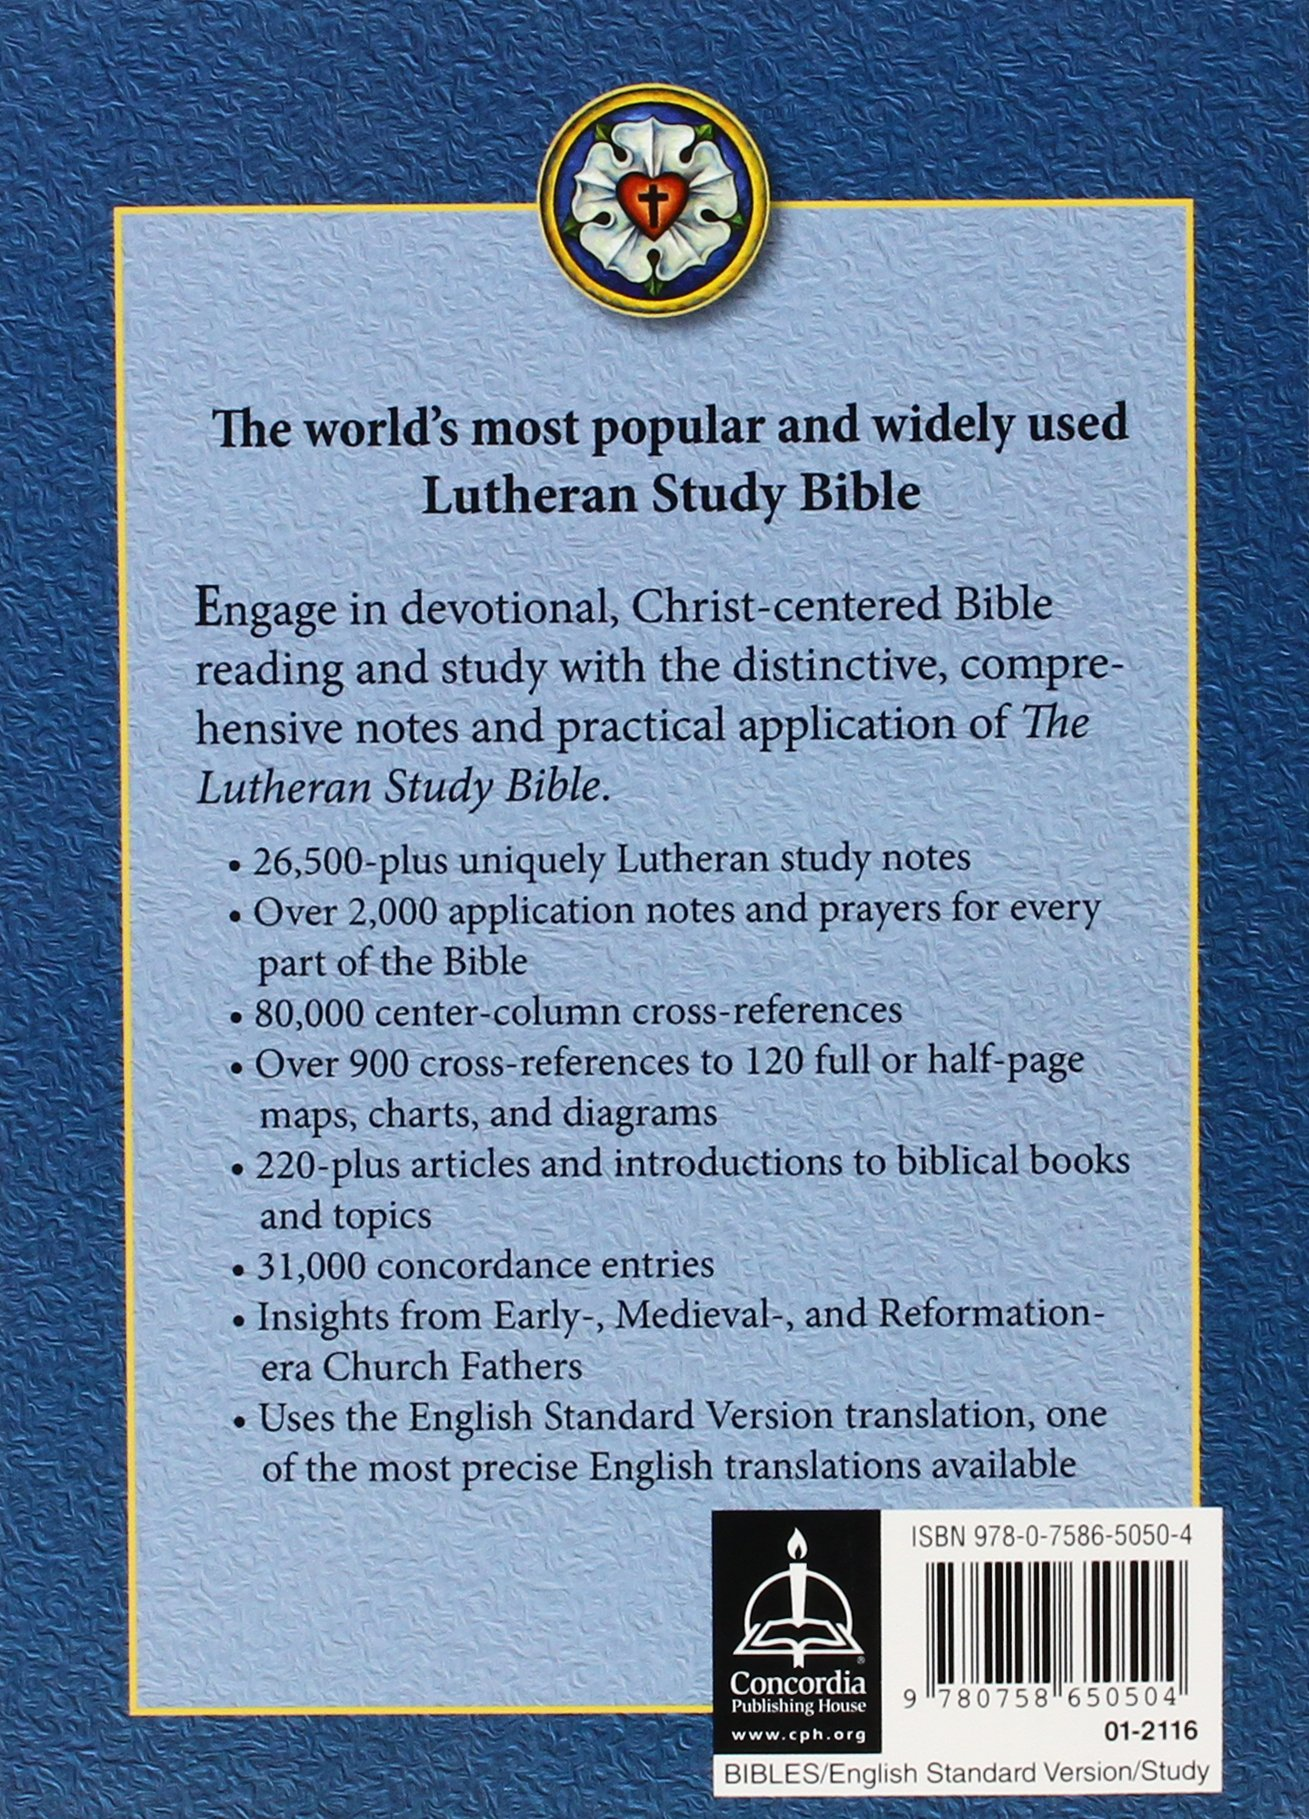 Lutheran study bible esv edward a engelbrecht 9780758650504 lutheran study bible esv edward a engelbrecht 9780758650504 amazon books fandeluxe Image collections